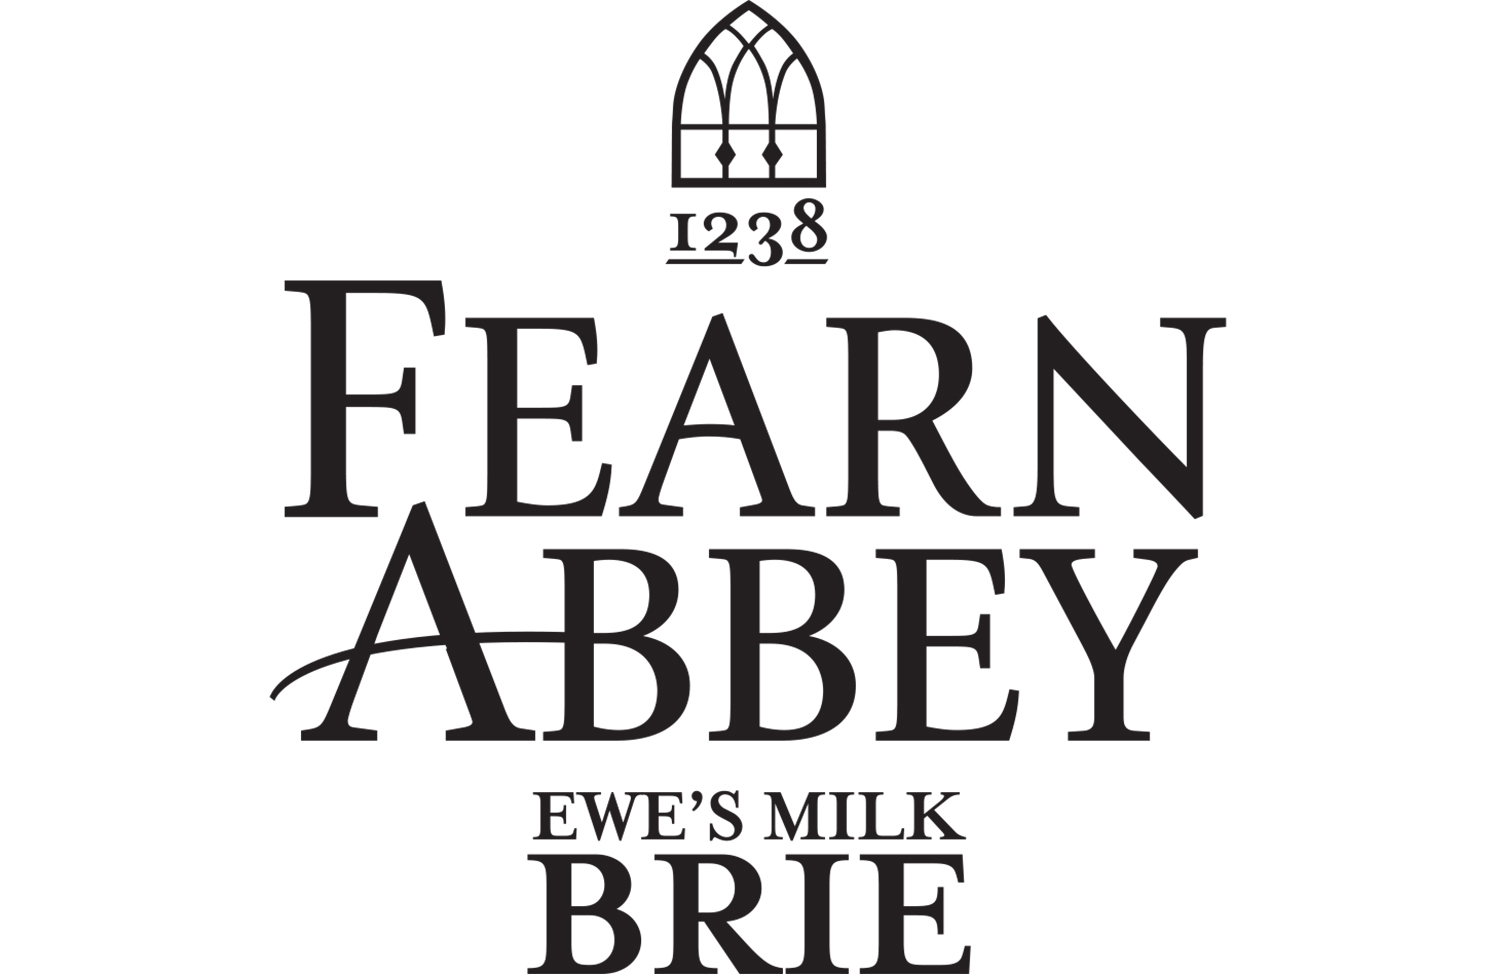 Best Scottish Cheese for Fearn Abbey Brand